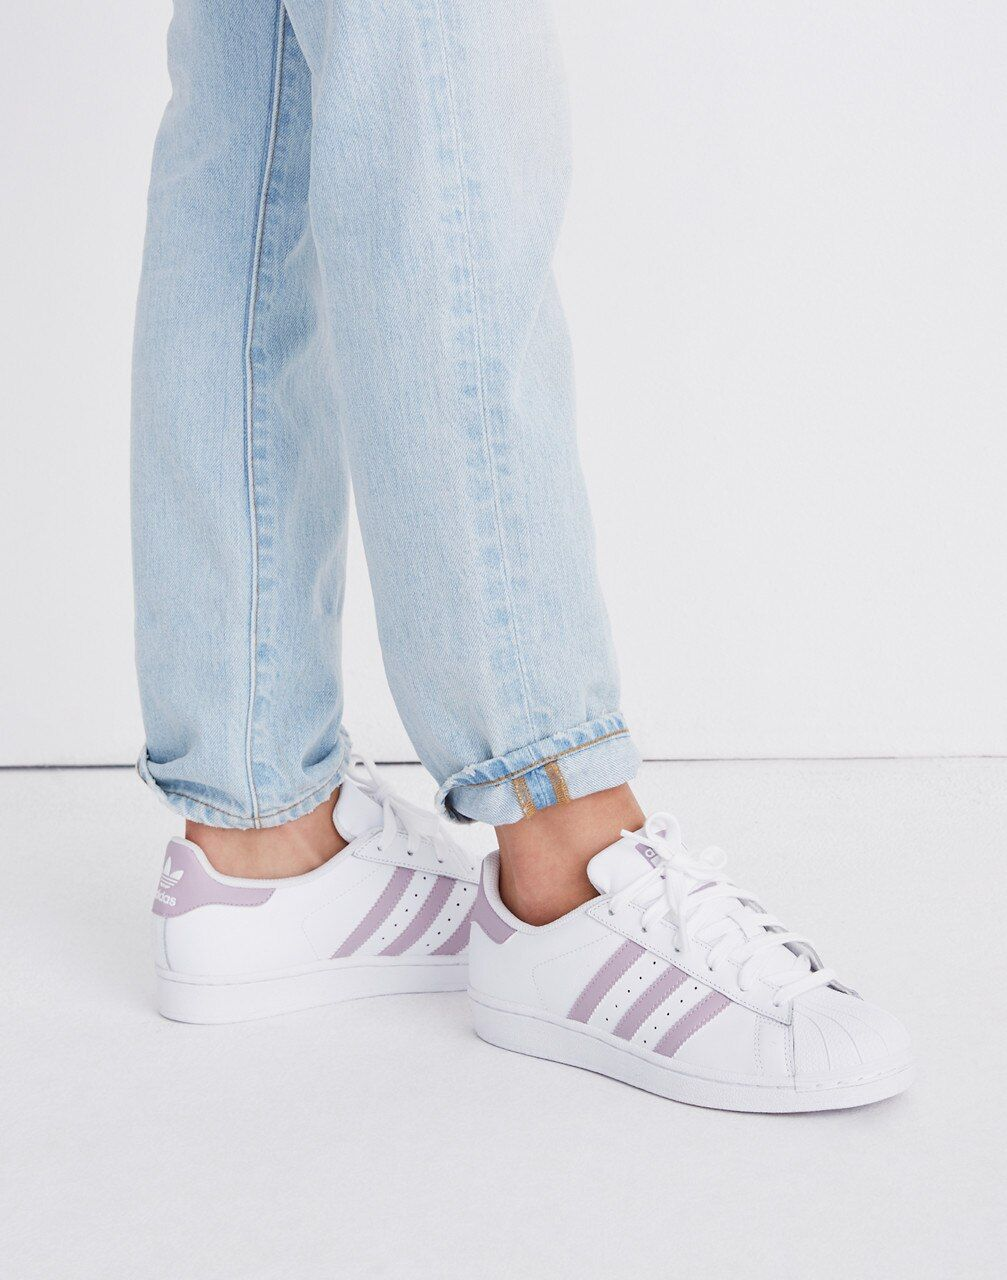 Adidas Superstar J Sneakers, Women's Fashion, Shoes